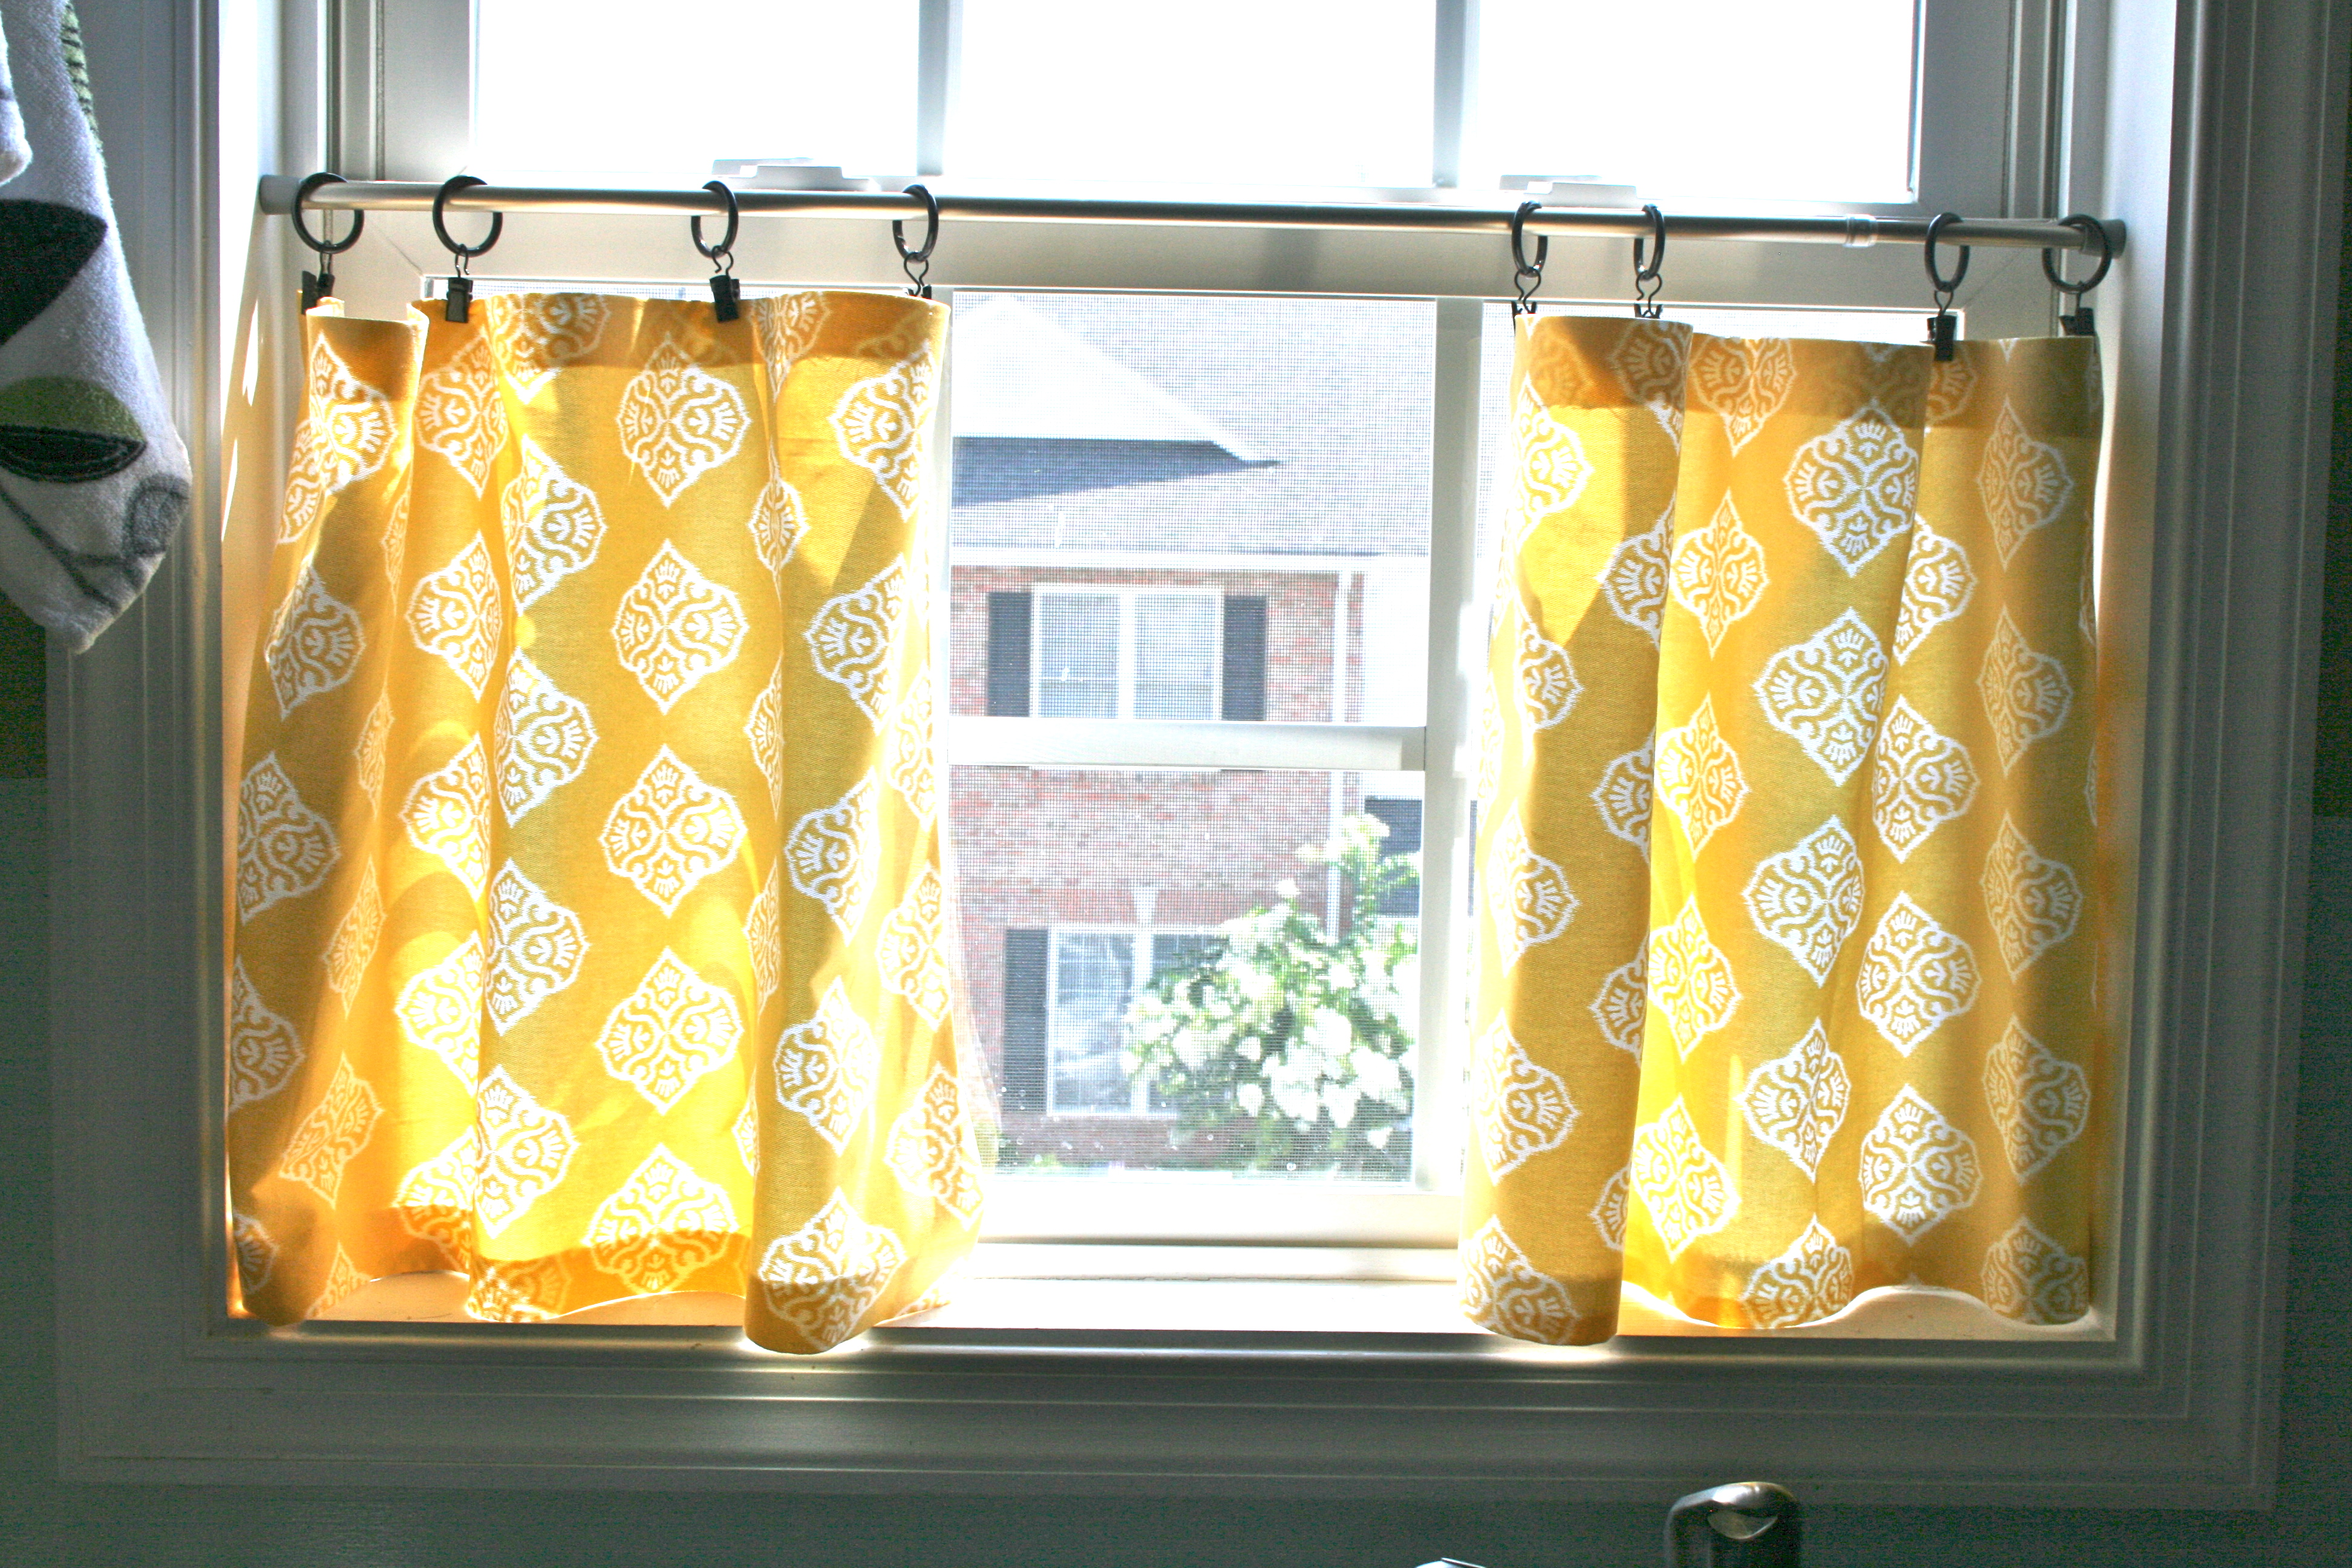 Finest Pinspiration Monday: No sew cafe curtains - Dream Green DIY FD45